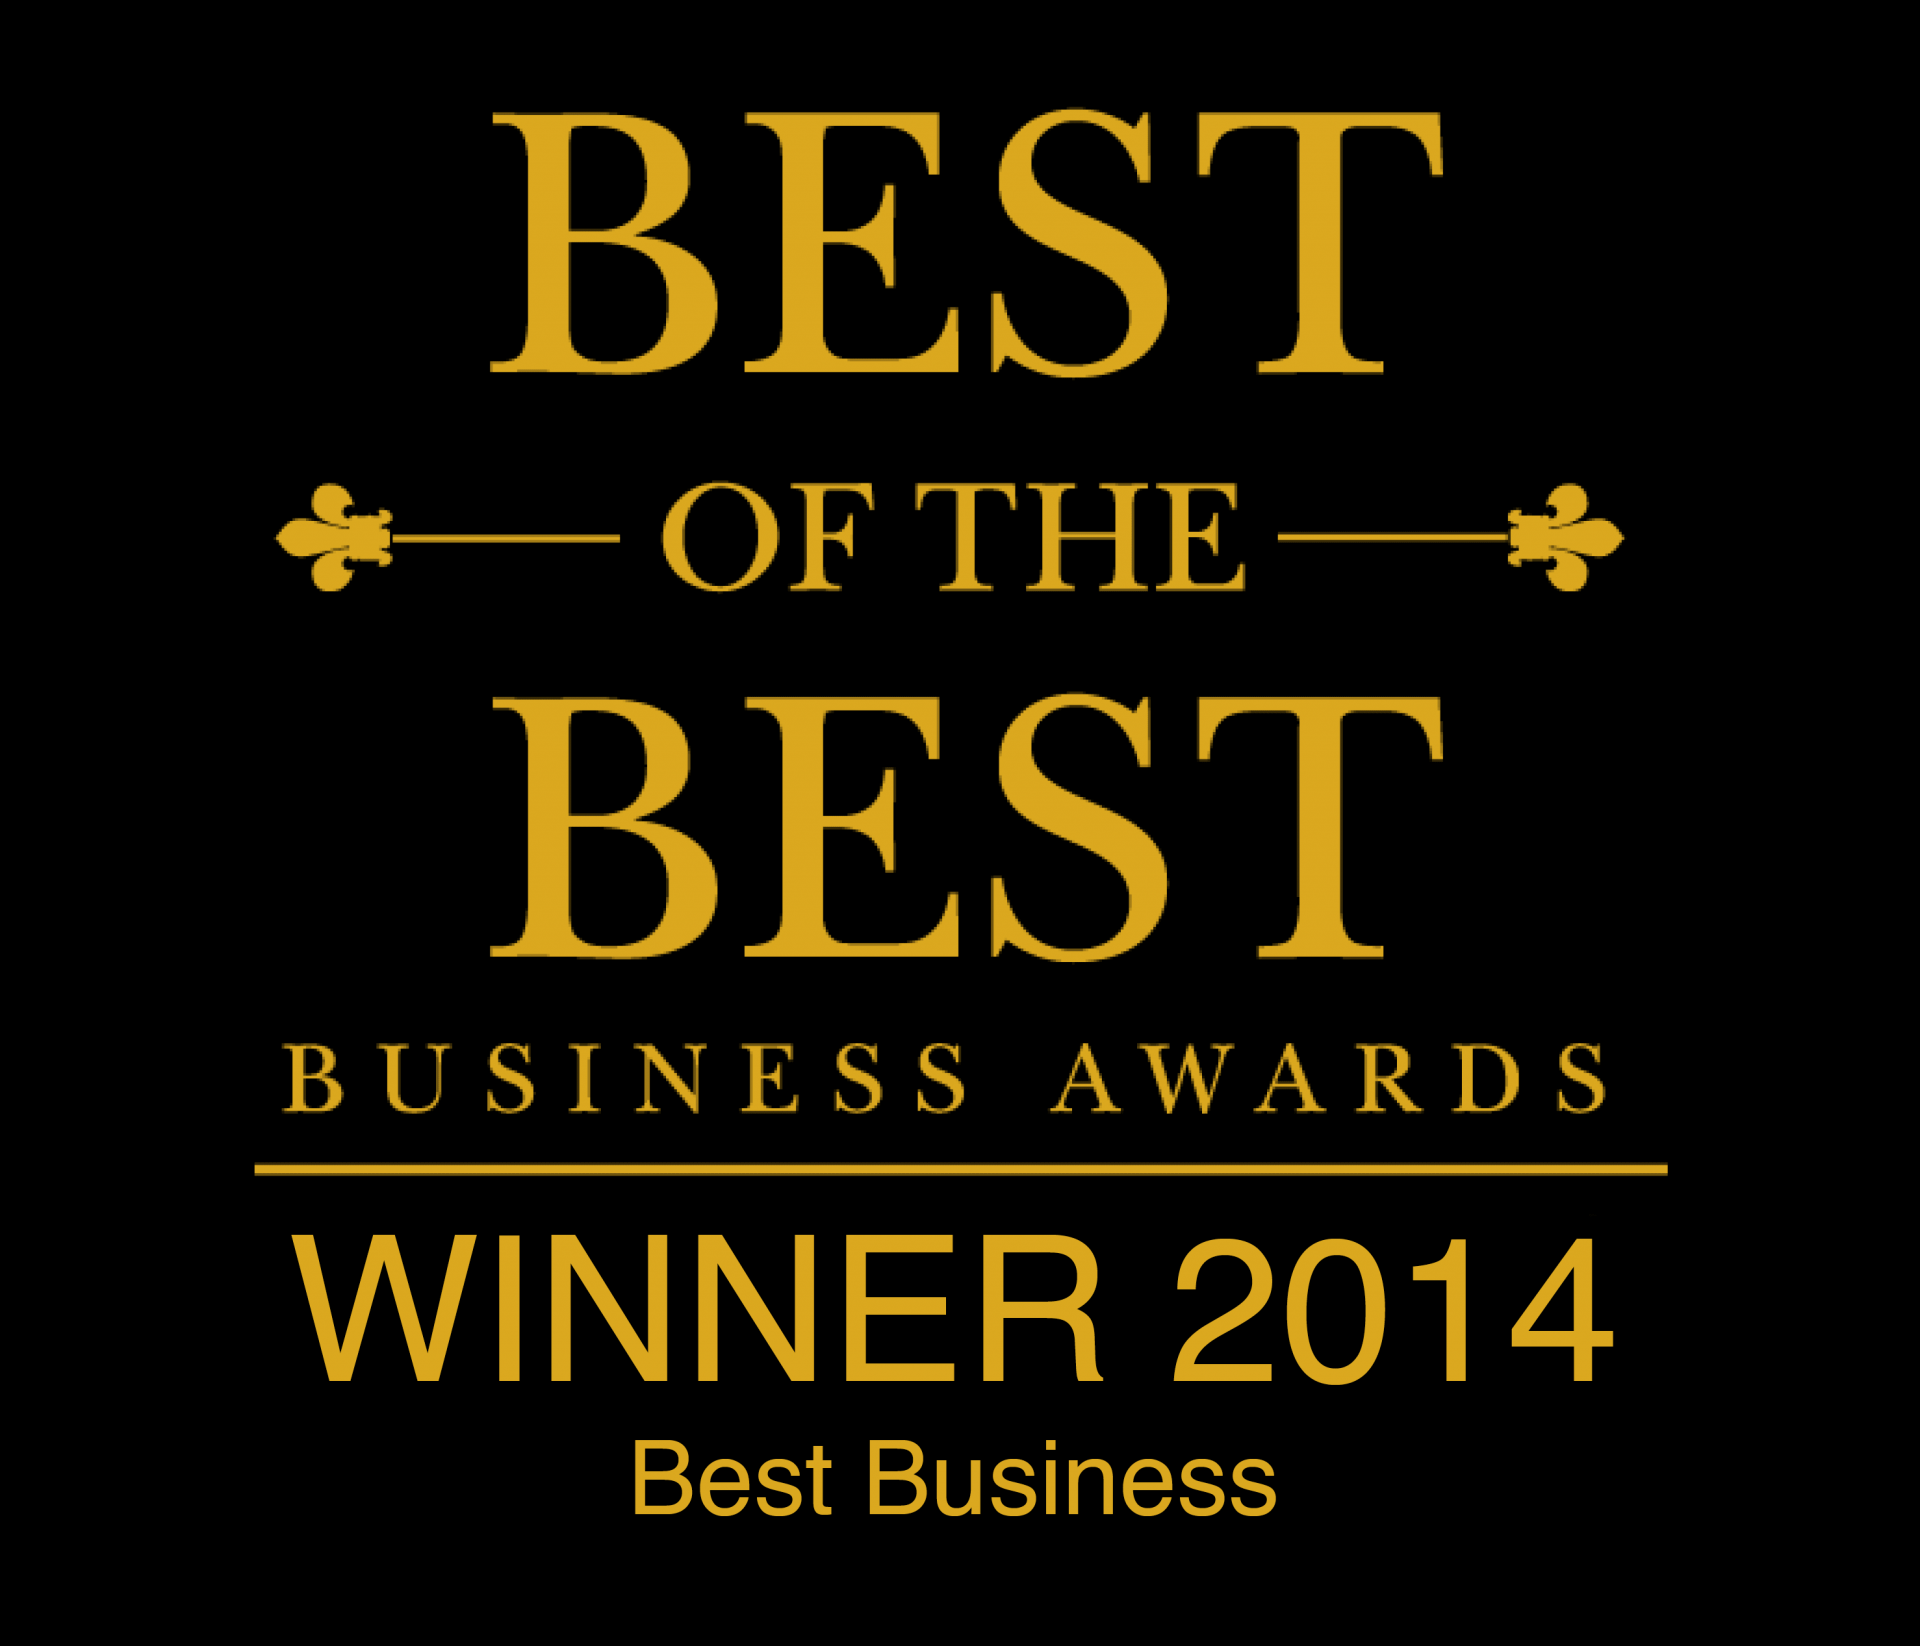 Best of the Best Business Awards Winner 2014